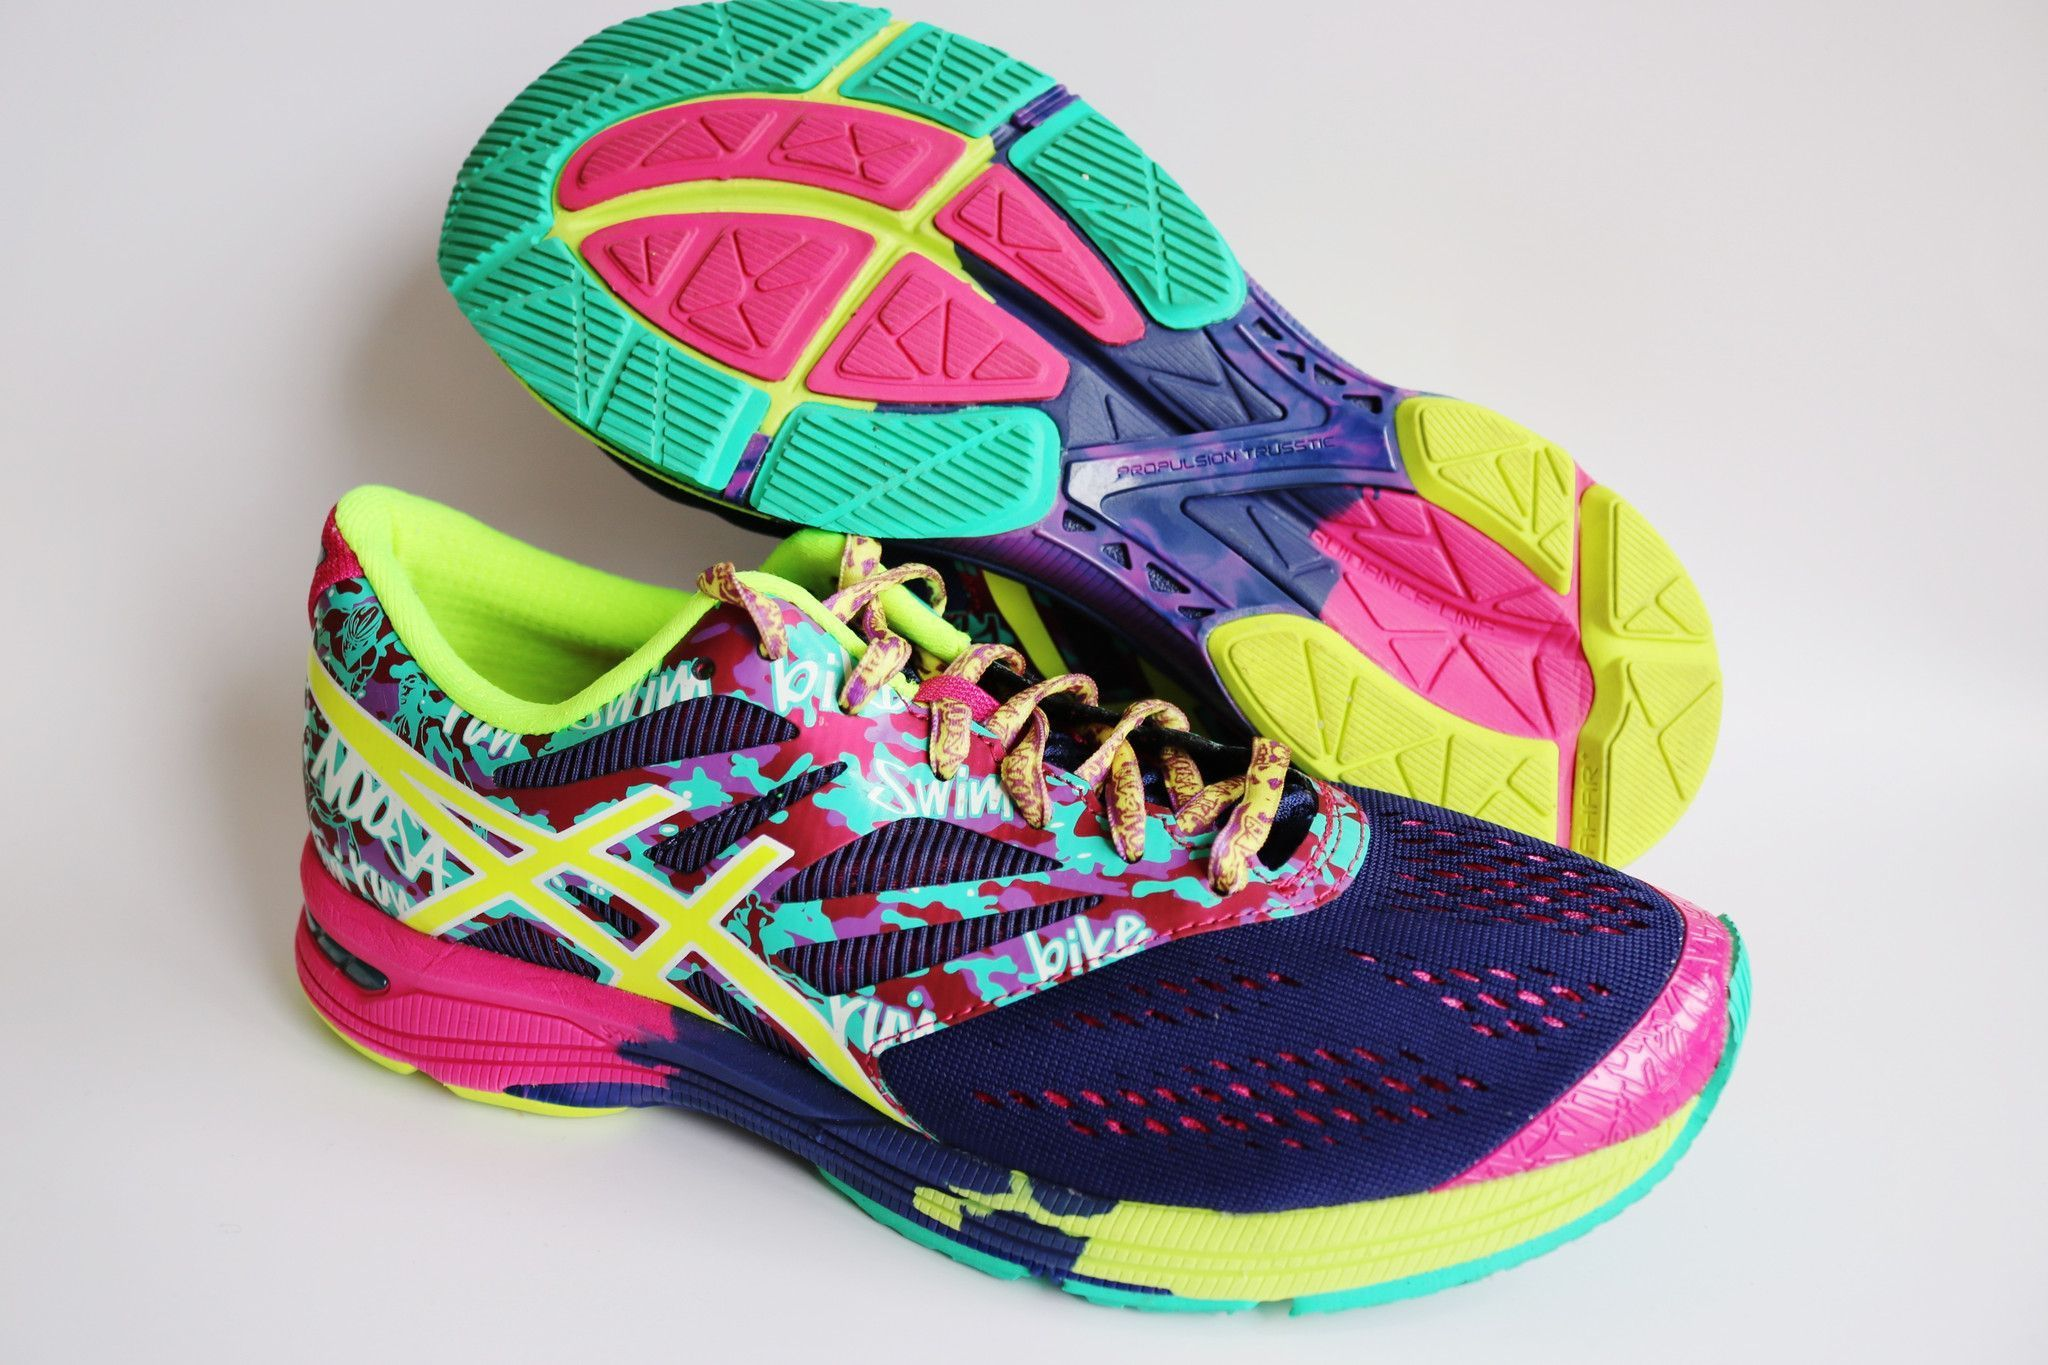 f8ce07505 Asics Womens T580N Gel-Noosa Tri 10 Navy Flash Yellow Hot Pink Athletic  Cross Training Running Shoes Size 8.5